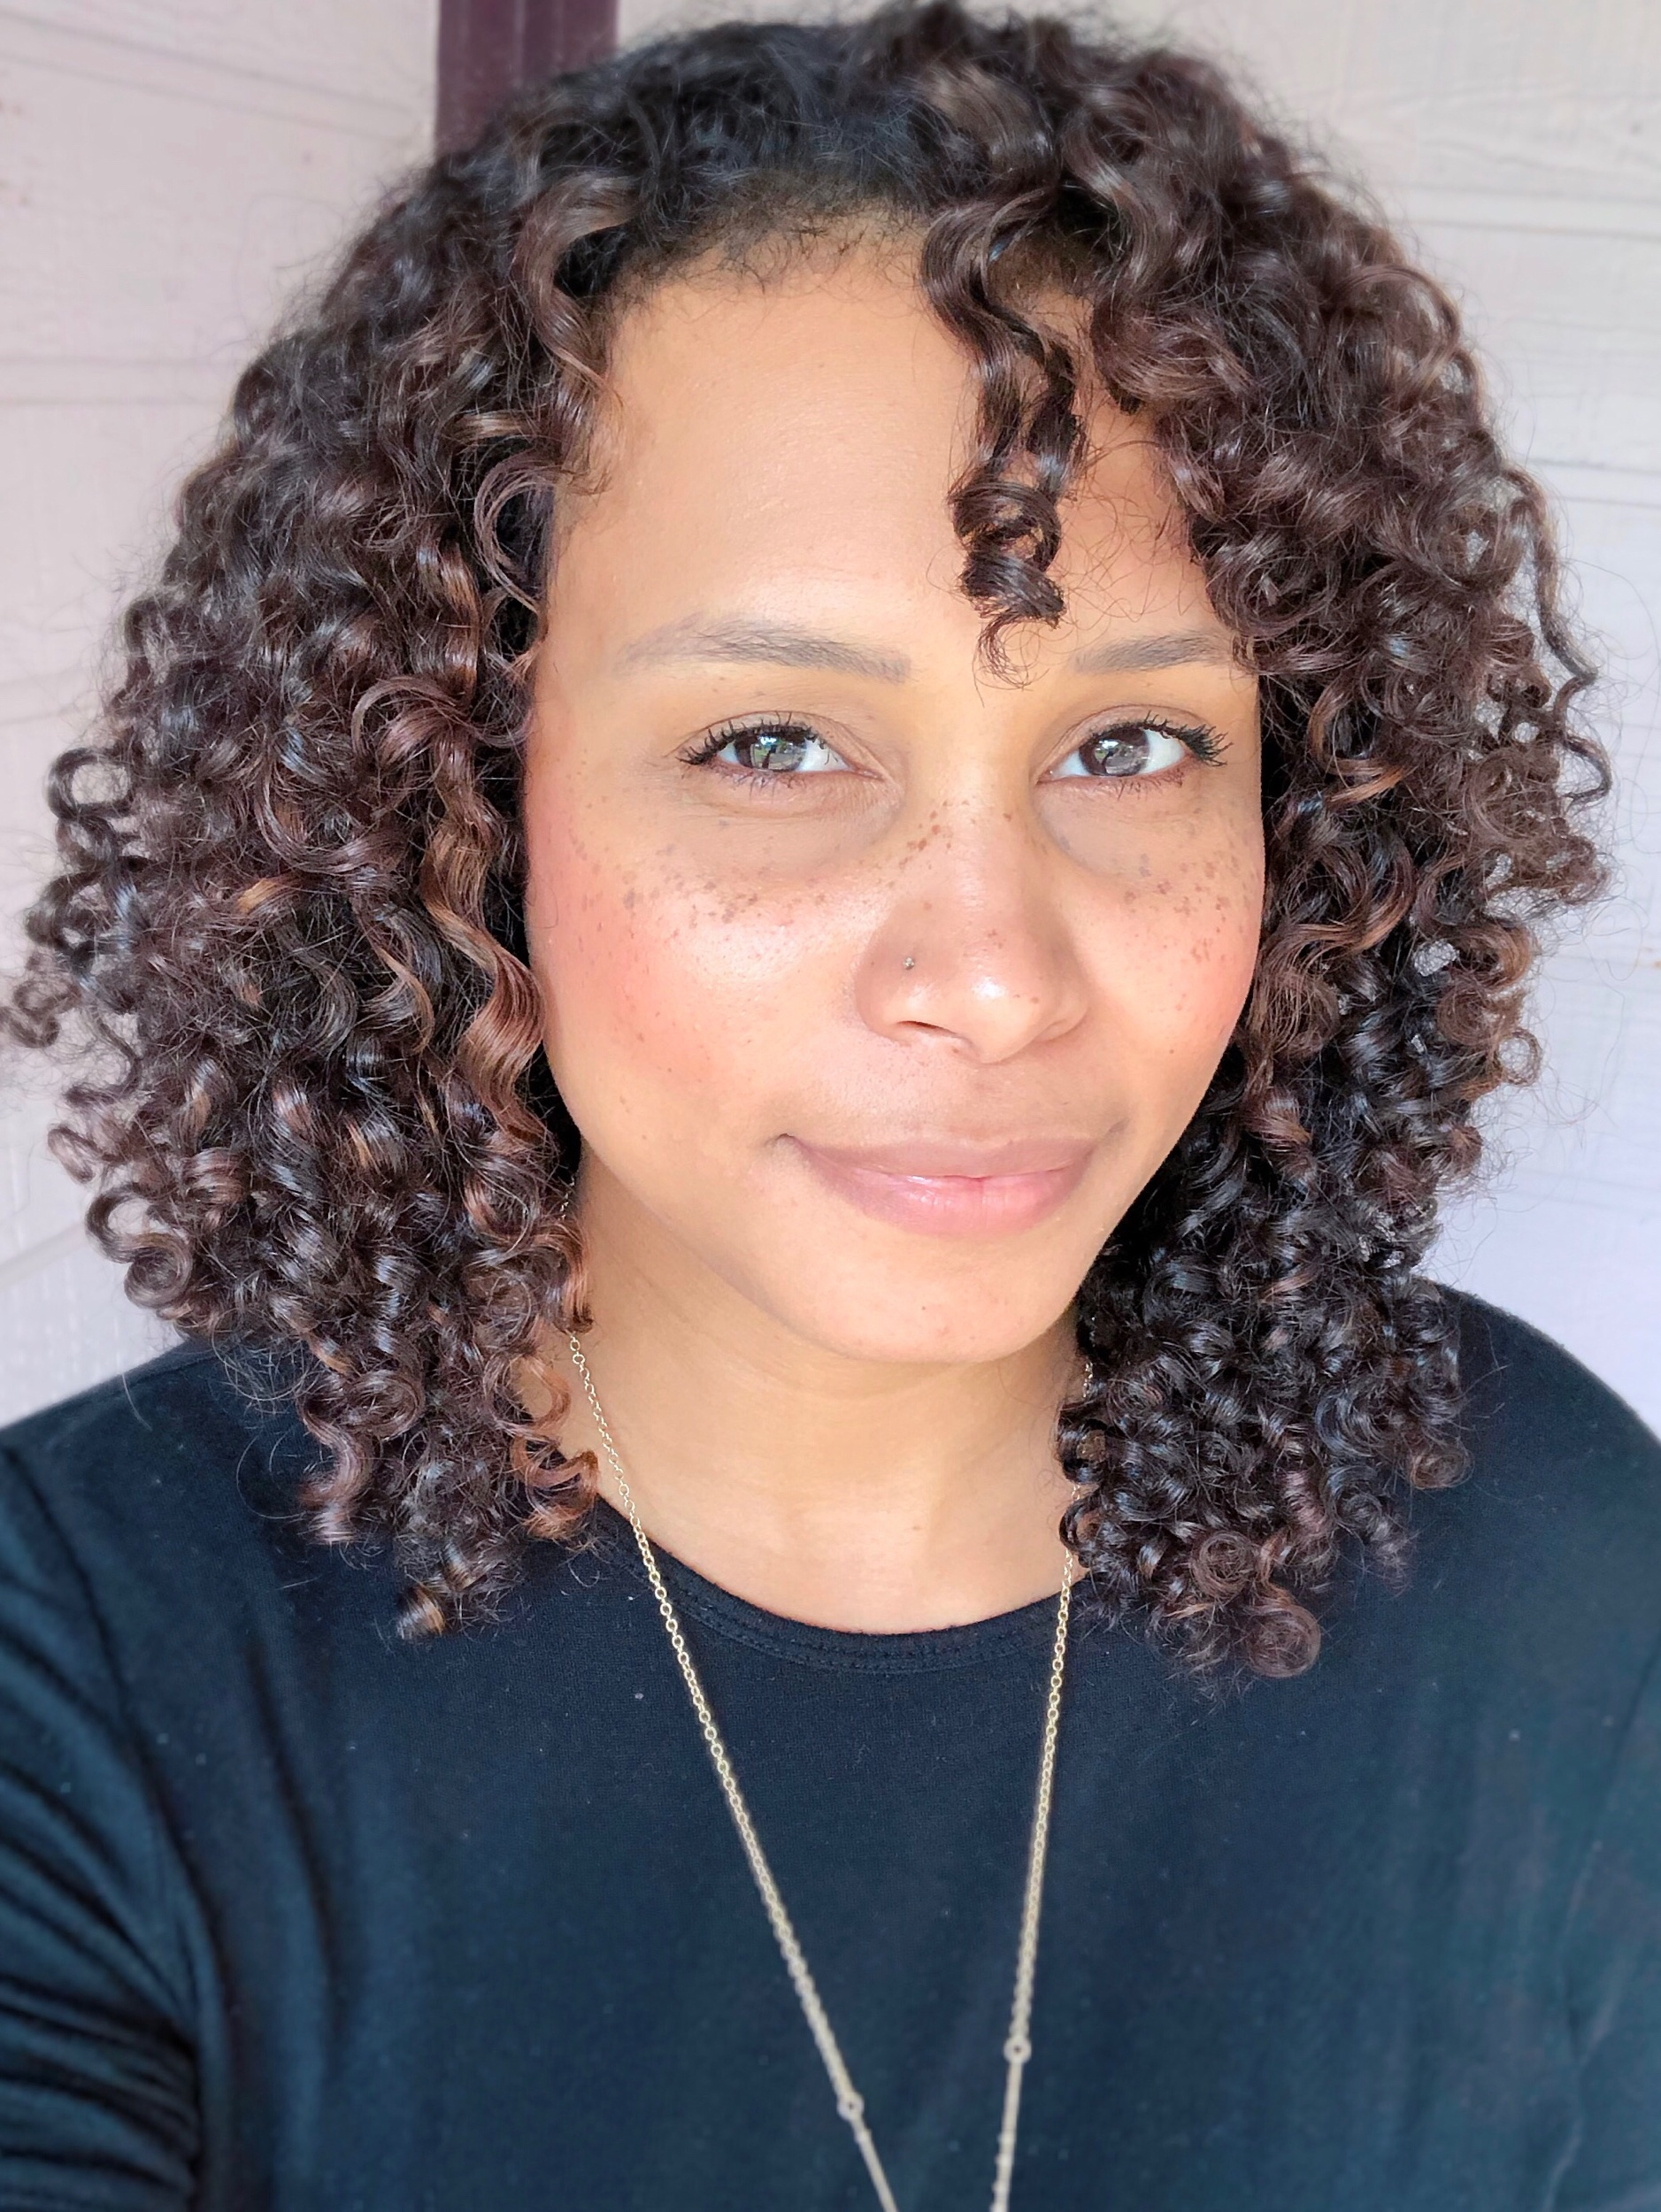 I see you, I hear you, & I understand you! - My name is Jessica and my passion is to help people love and embrace their natural curls! I provide custom curly cuts and teach how you can achieve defined healthy hair. I want to help support you in your journey. I hope to meet you soon!Education/Certification• Rëzo Certified• Curly Hair Artistry Certified• DevaCurl Level 2 Certified• Atoya (The Curly Hair Studio) Class• Kristy Ramos (Sunflowers and Scissors) Class• Marinello School of Beauty